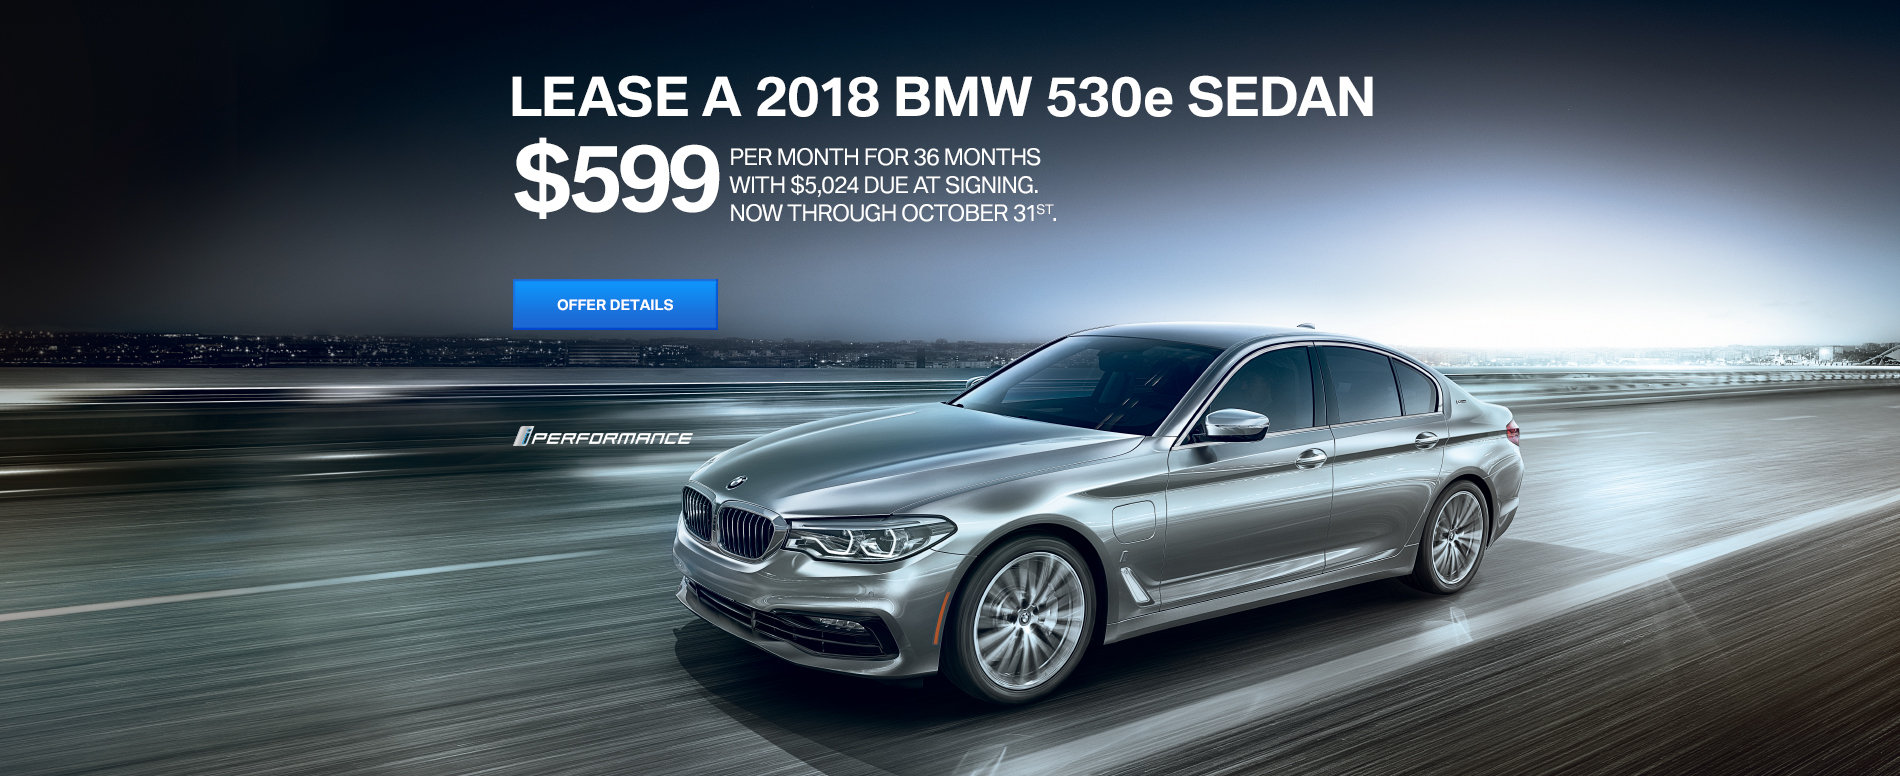 BMW New Used Car Dealer New Used Cars In San Francisco San - Audi san francisco service